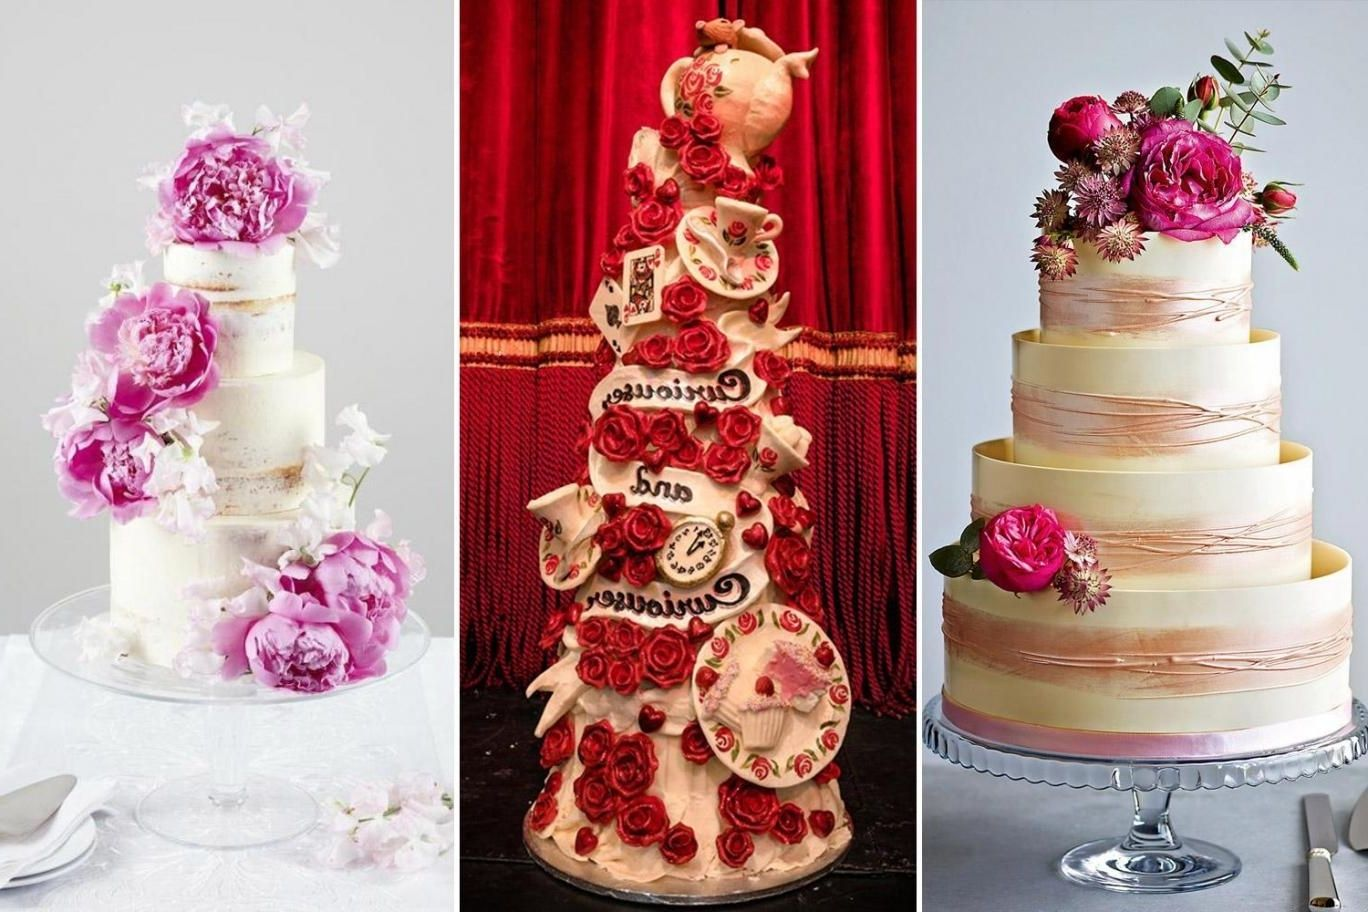 Best Wedding Cake S London